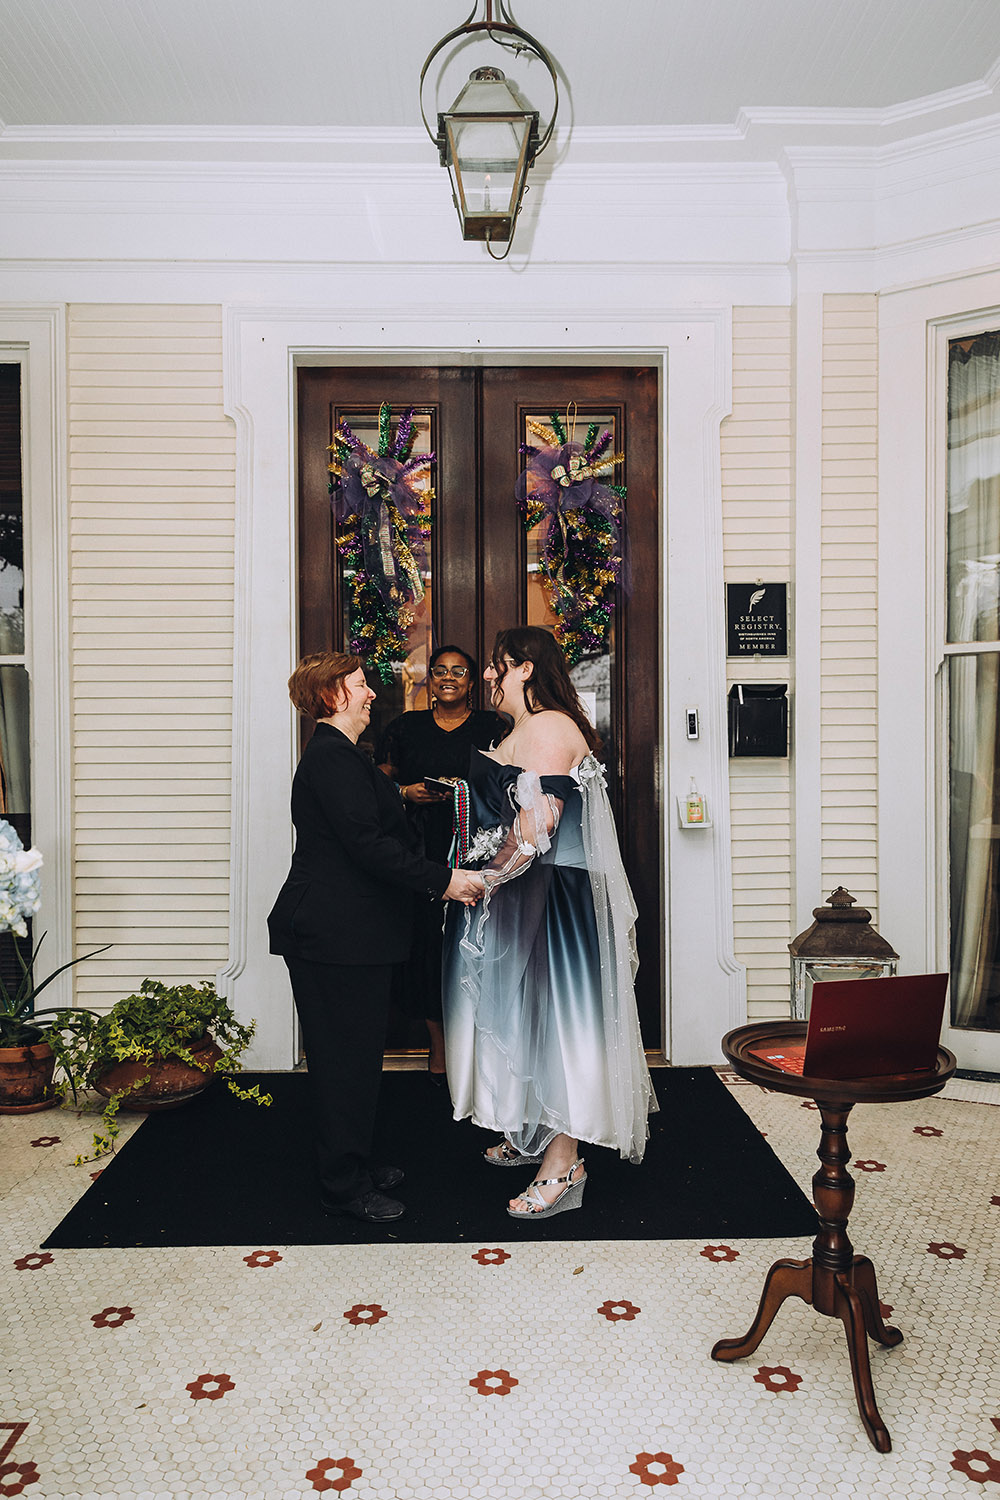 the wedding ceremony at Canal Street Inn in New Orleans